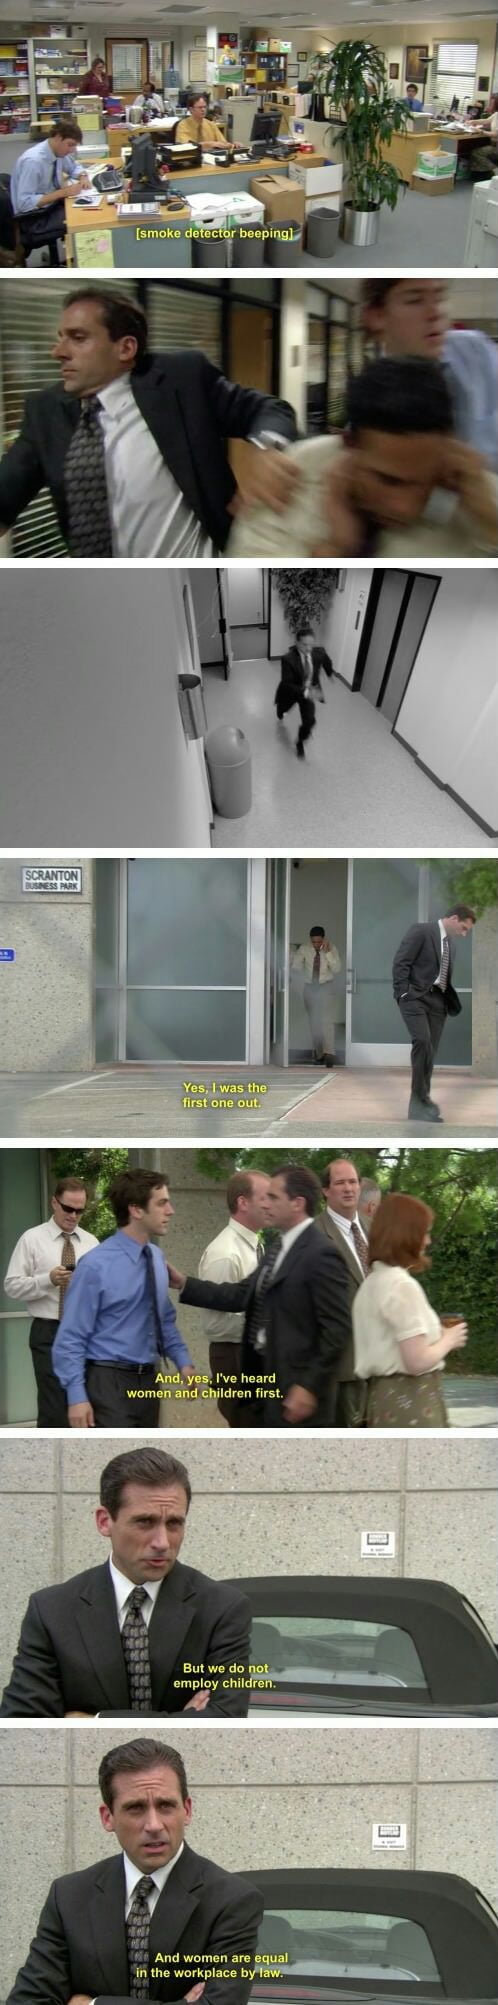 I just love the office